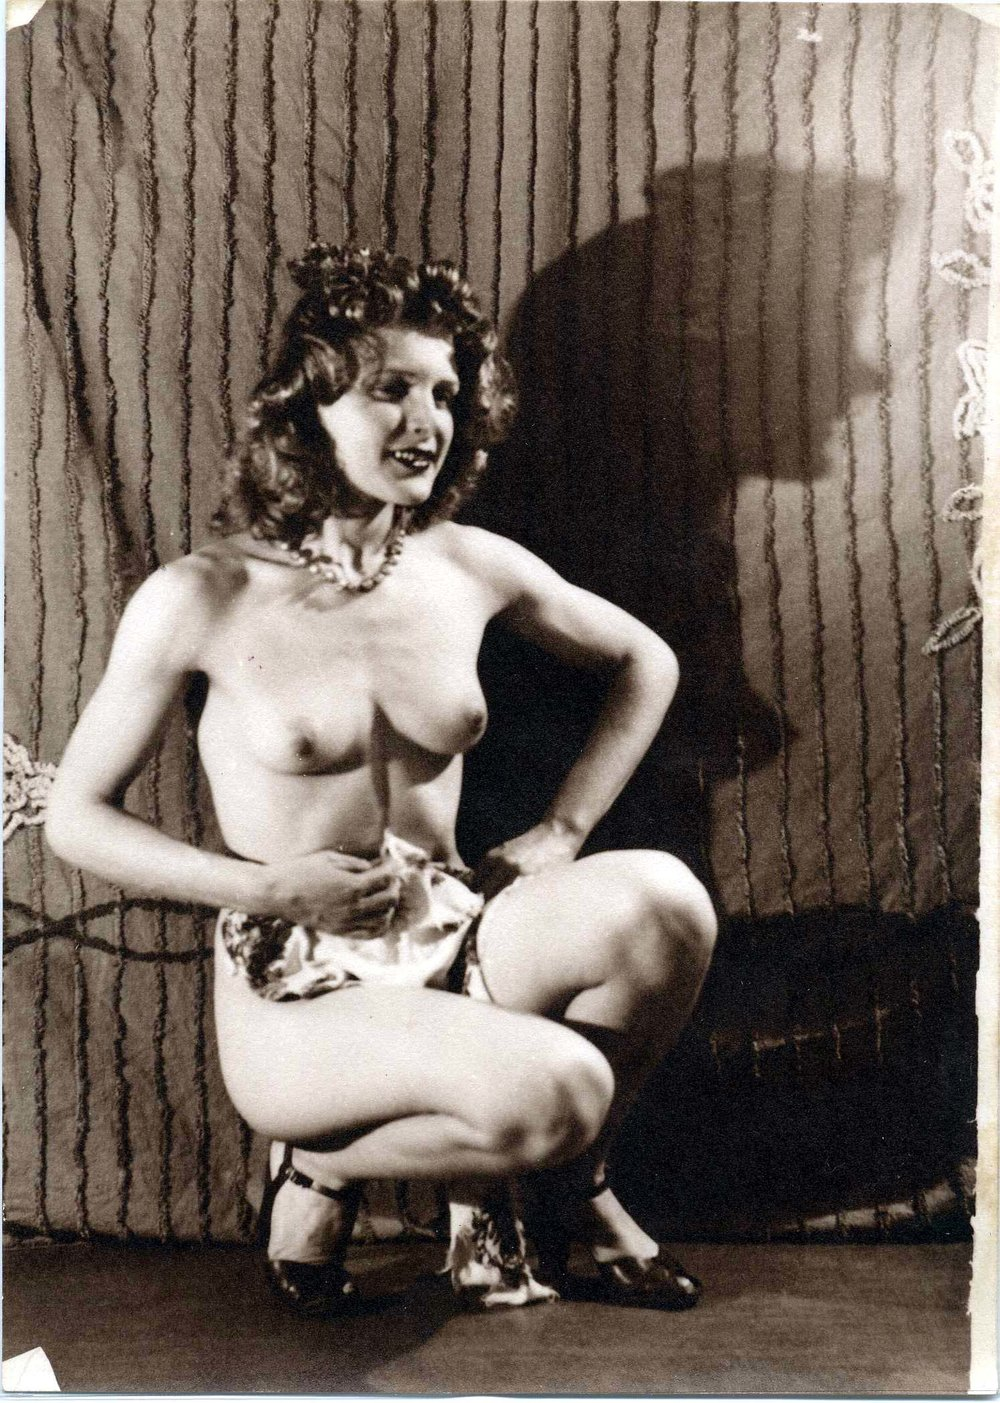 Eugene Von Bruenchenhein (American, 1910-1983).  Untitled (Marie crouched, chenille bedspread background, shadow) , n.d. Gelatin silver print, 7 x 5 in. Intuit: The Center for Intuitive and Outsider Art, gift of Lewis and Jean Greenblatt, 2005.4.14